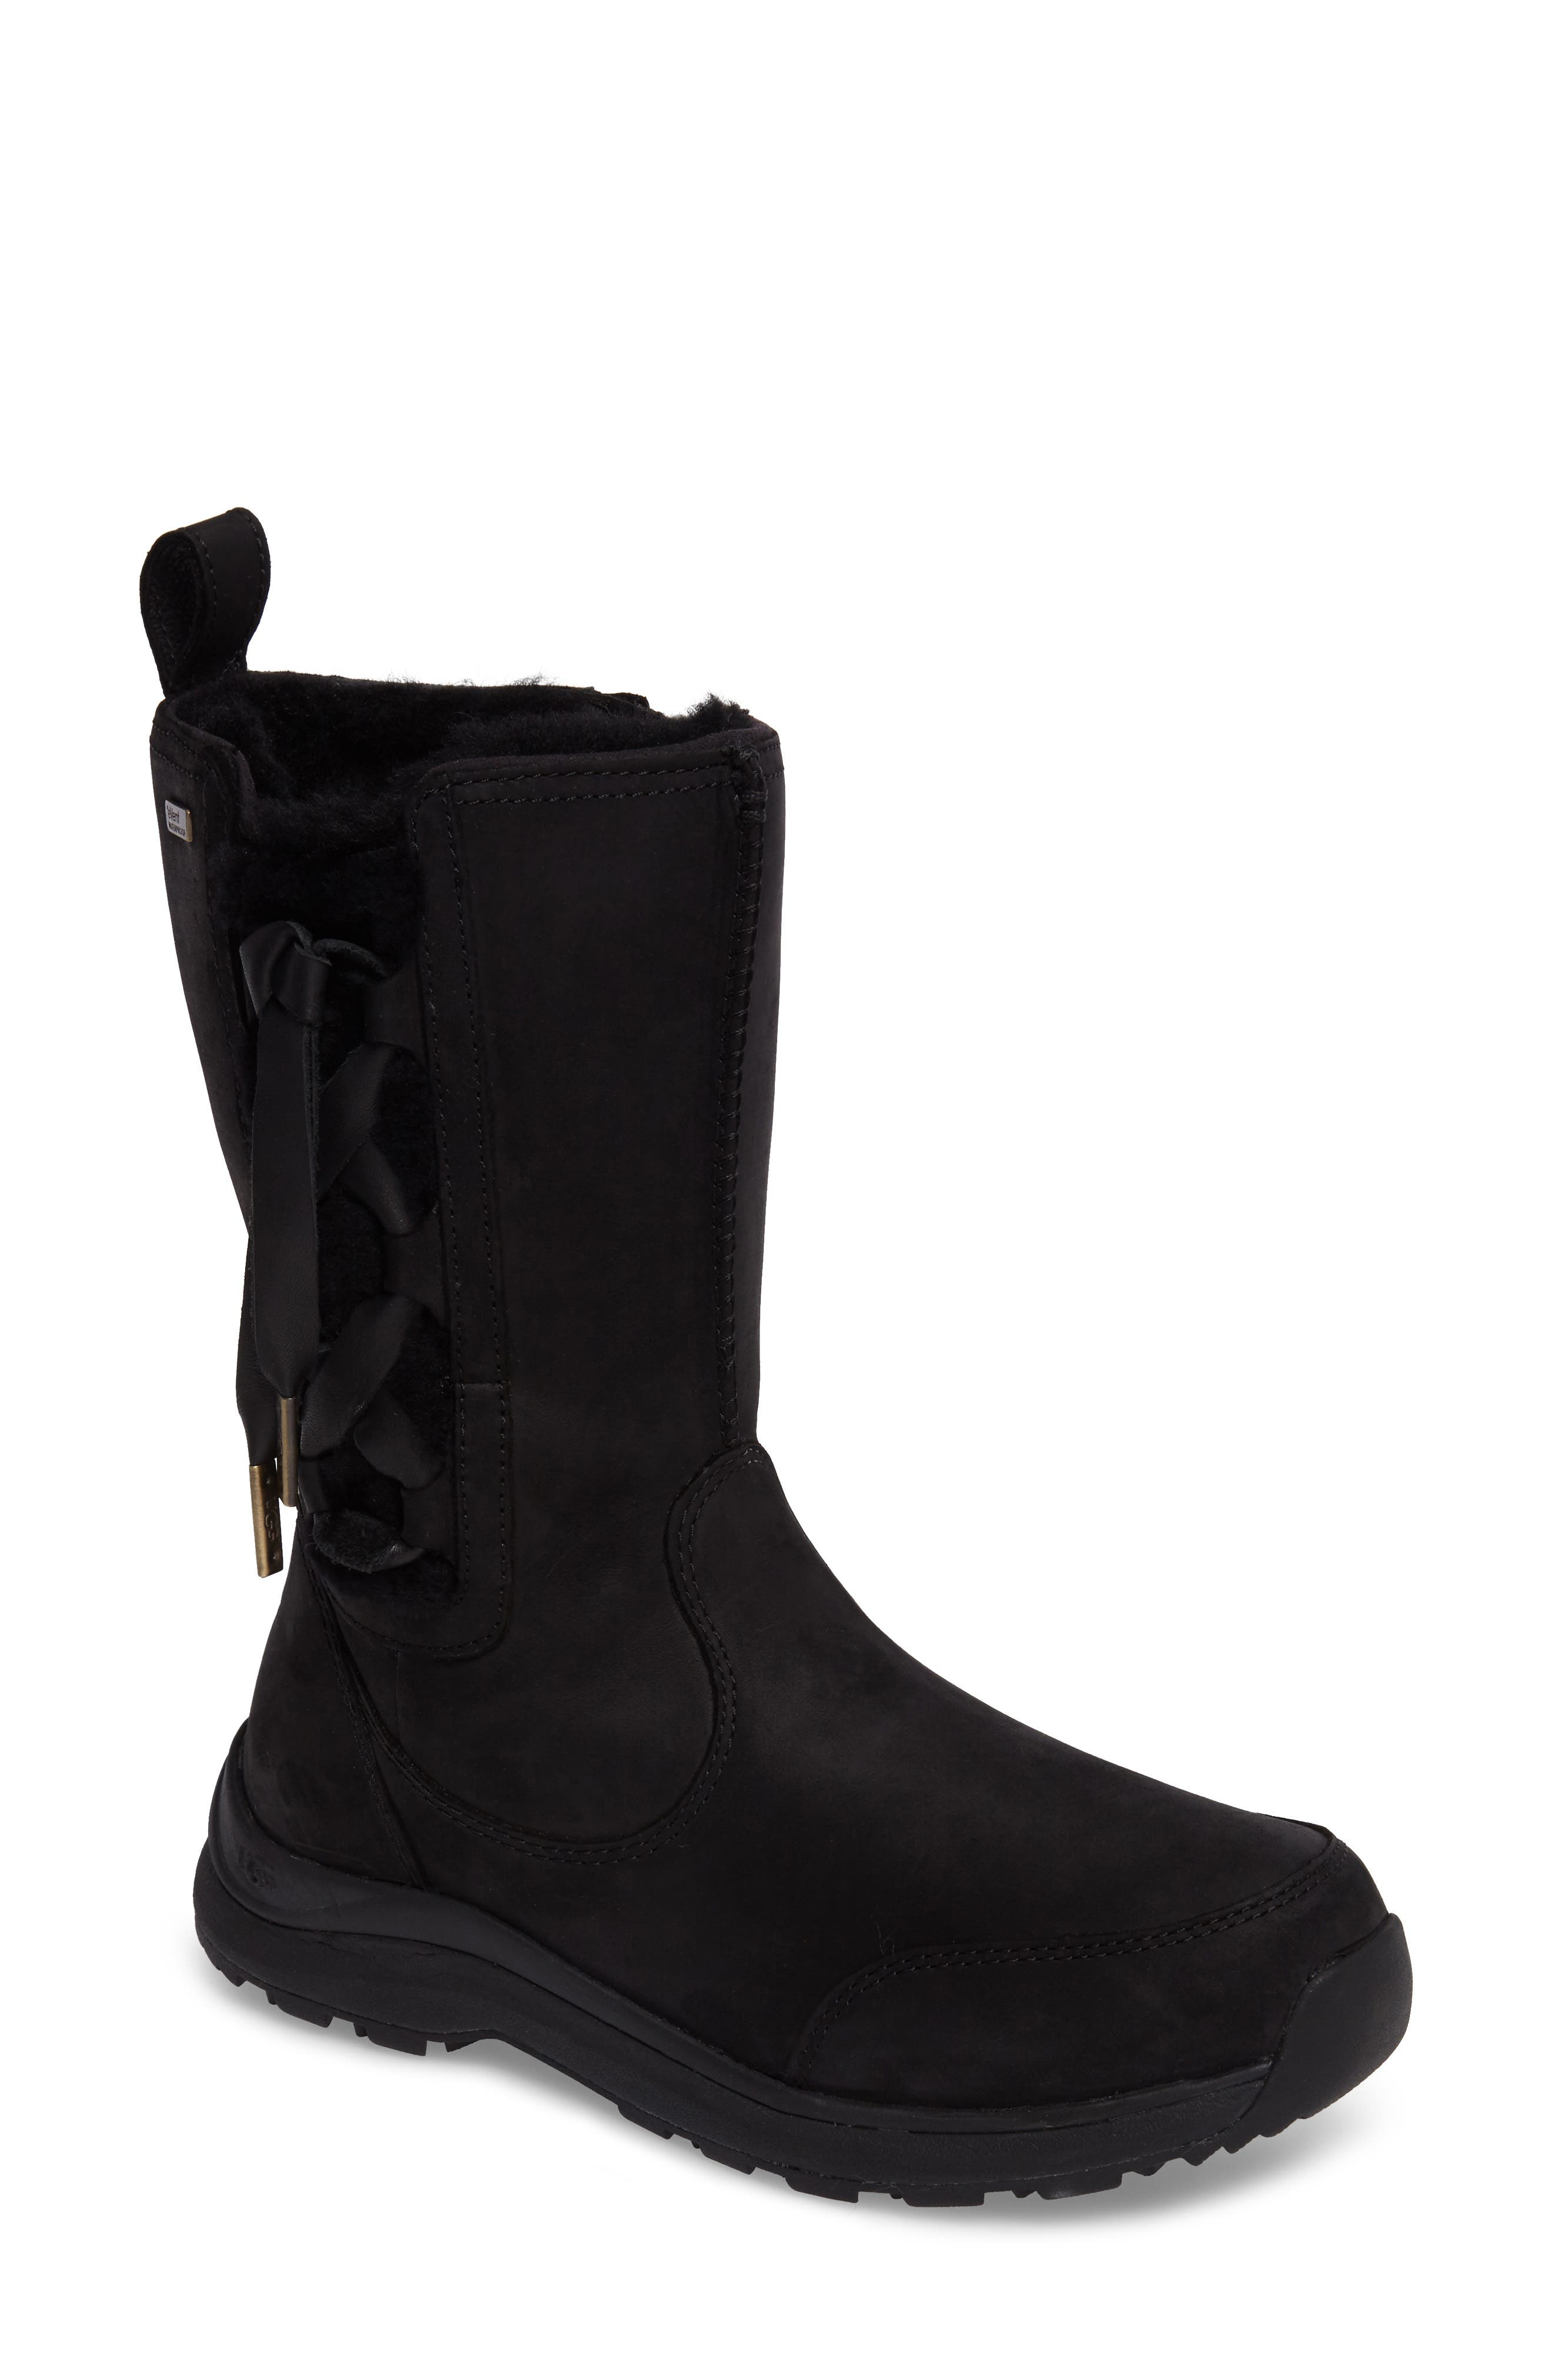 Suvi Waterproof Insulated Winter Boot,                         Main,                         color, Black Leather